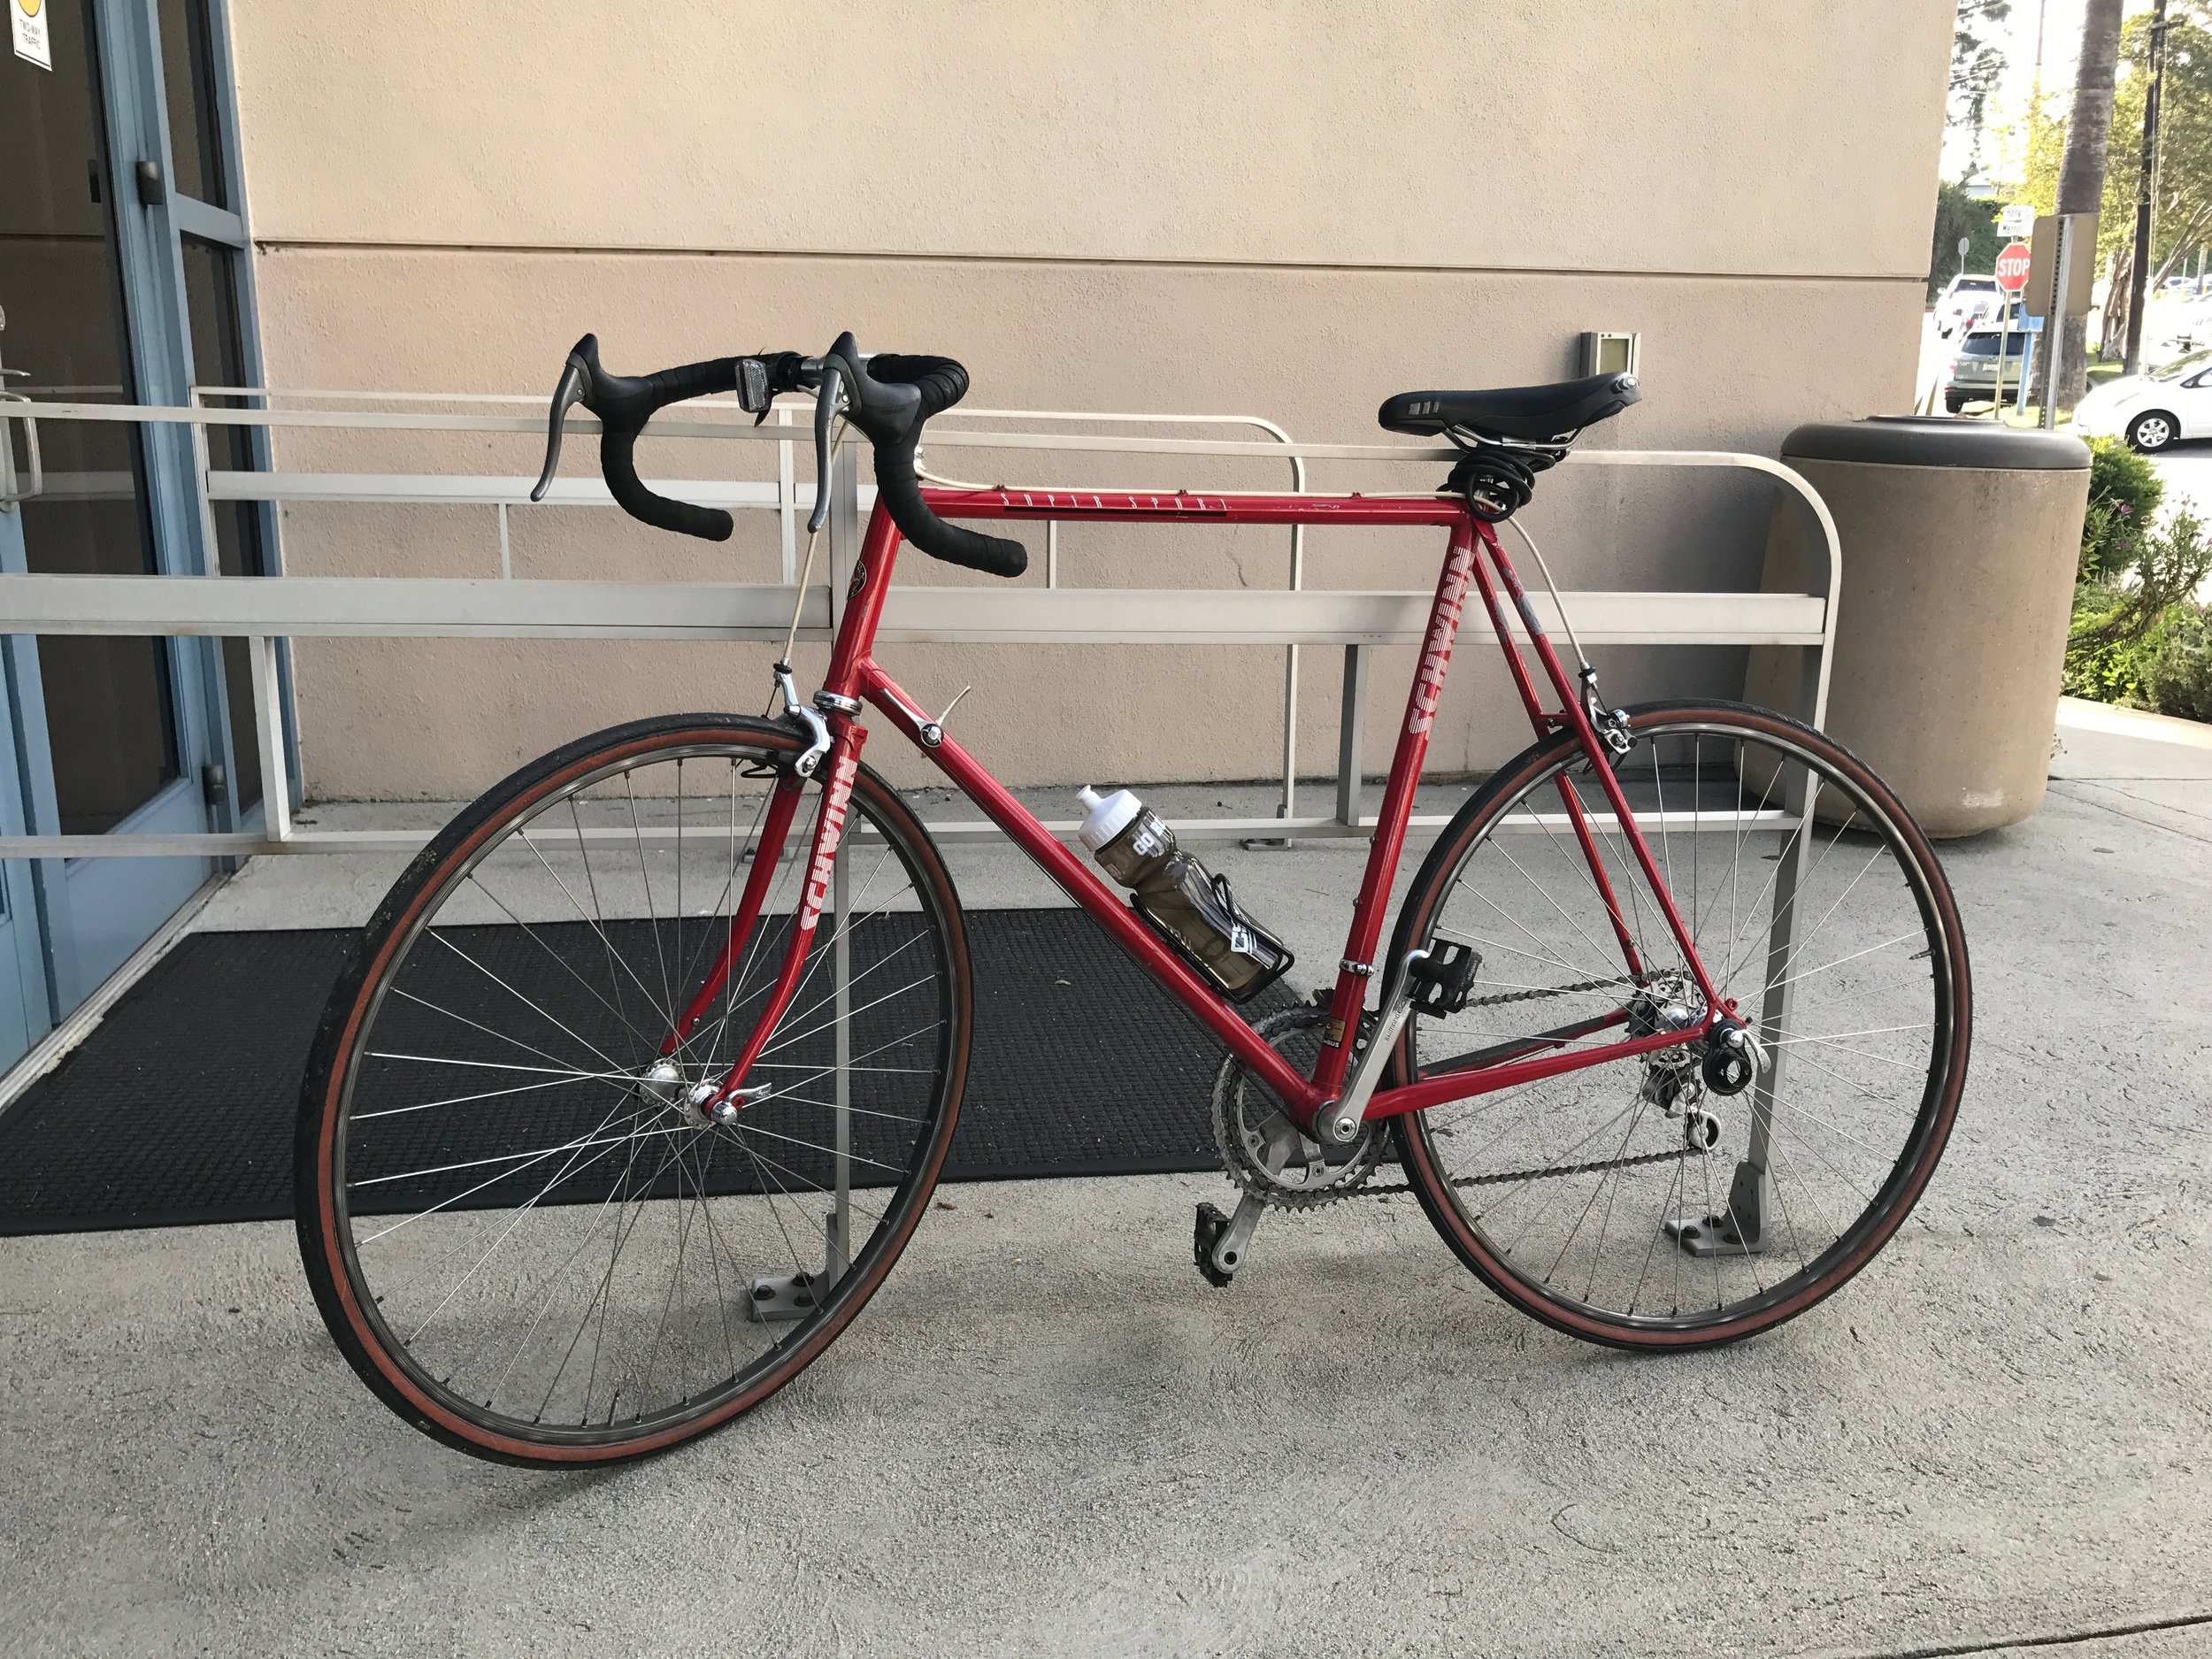 It's locked to the rail. I figured that even bike thieves would be loathe to steal from a cancer center.